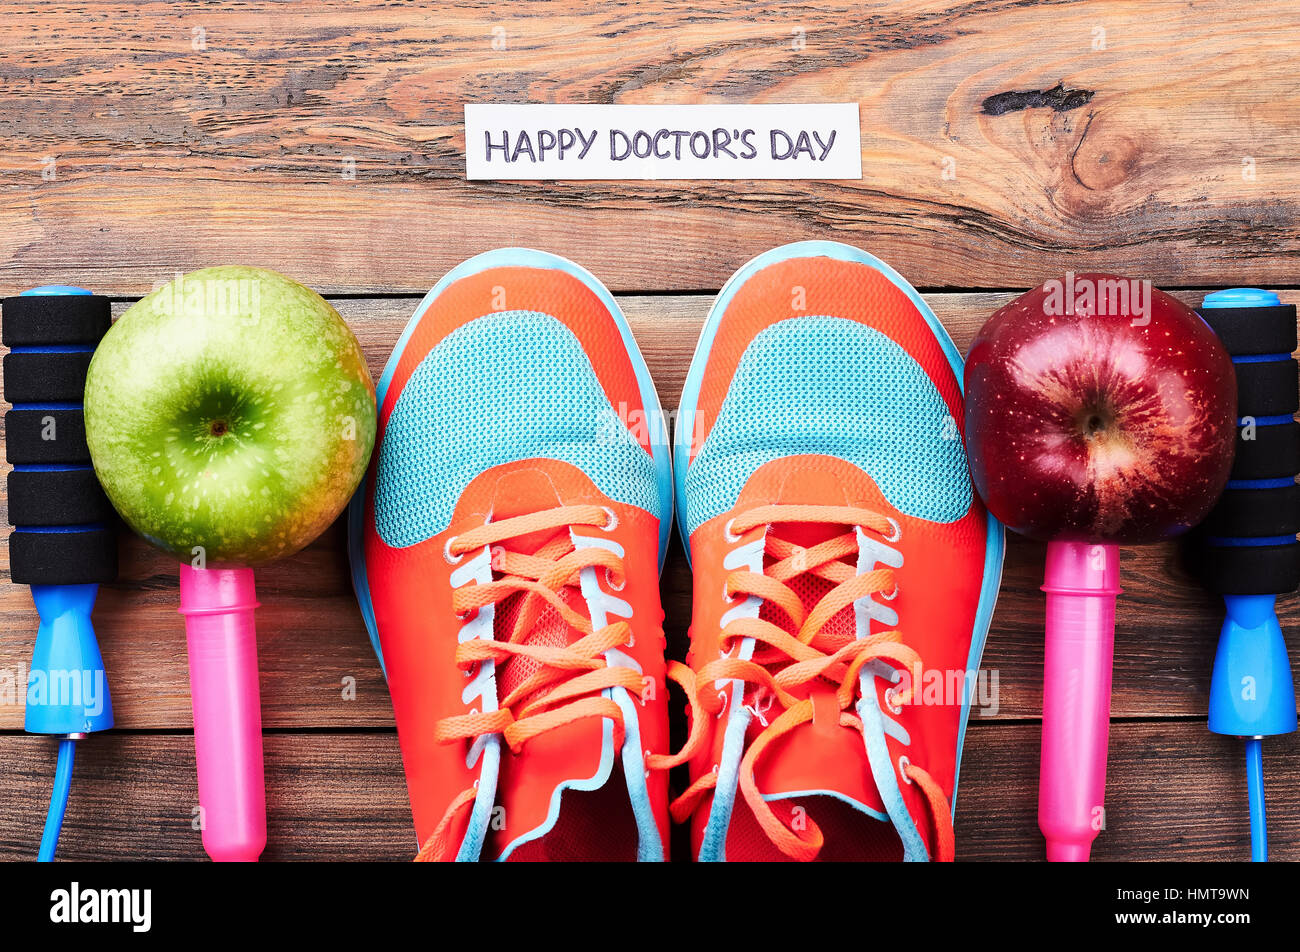 Apples, gumshoes and jump rope. - Stock Image